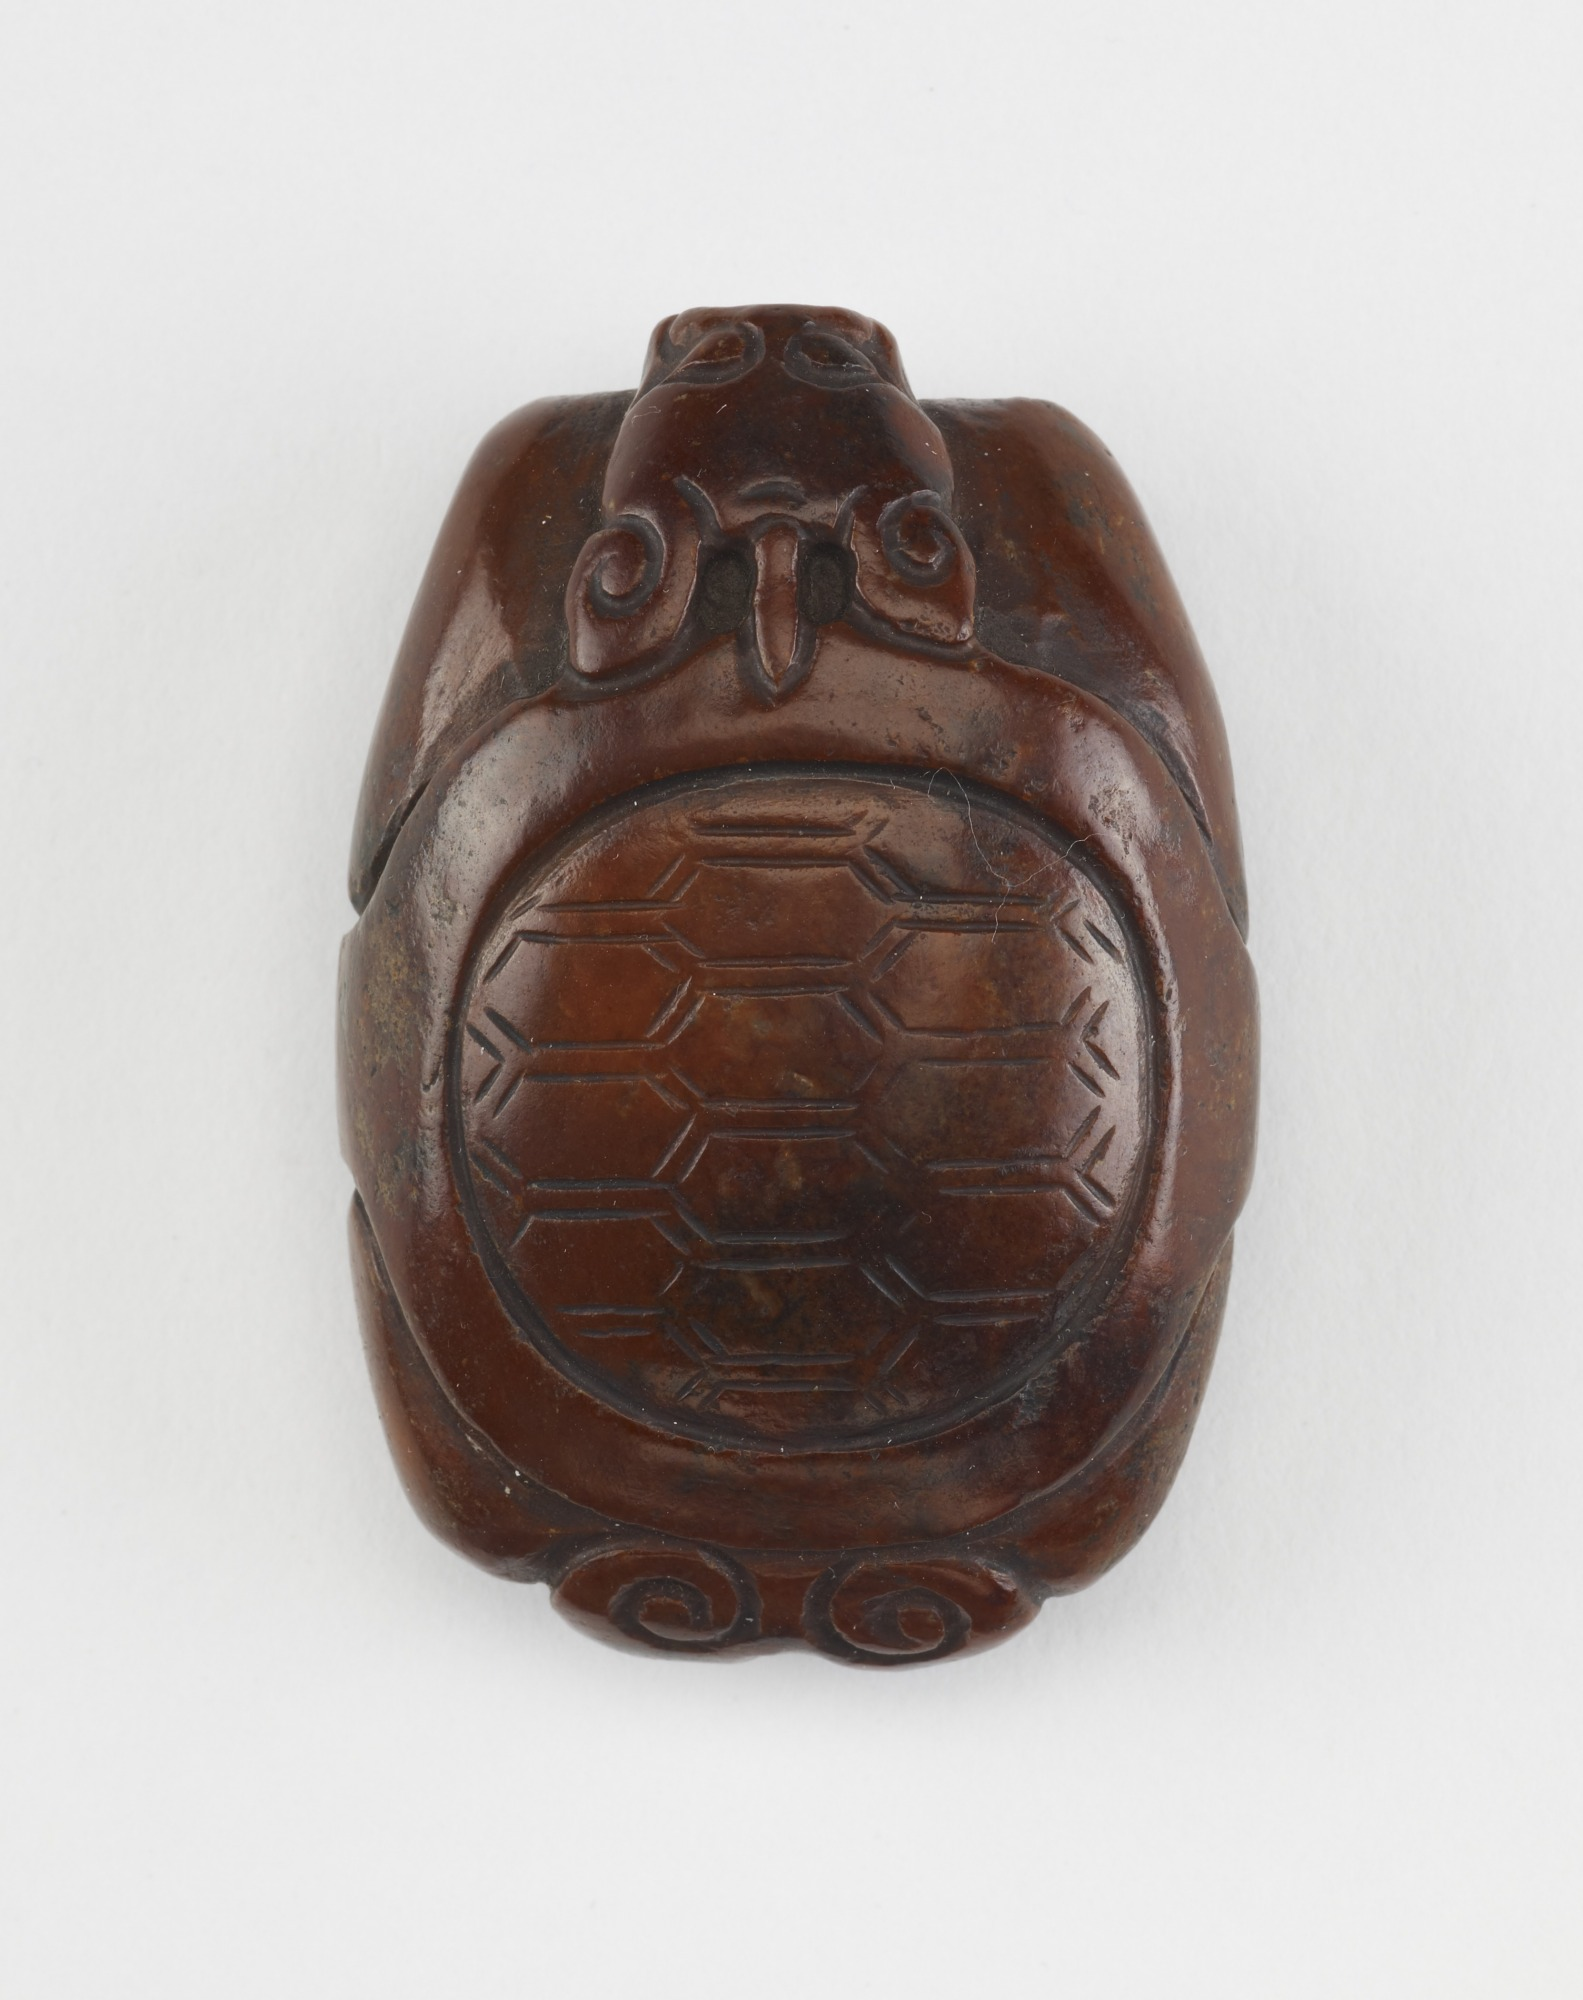 Tortoise with dragon head